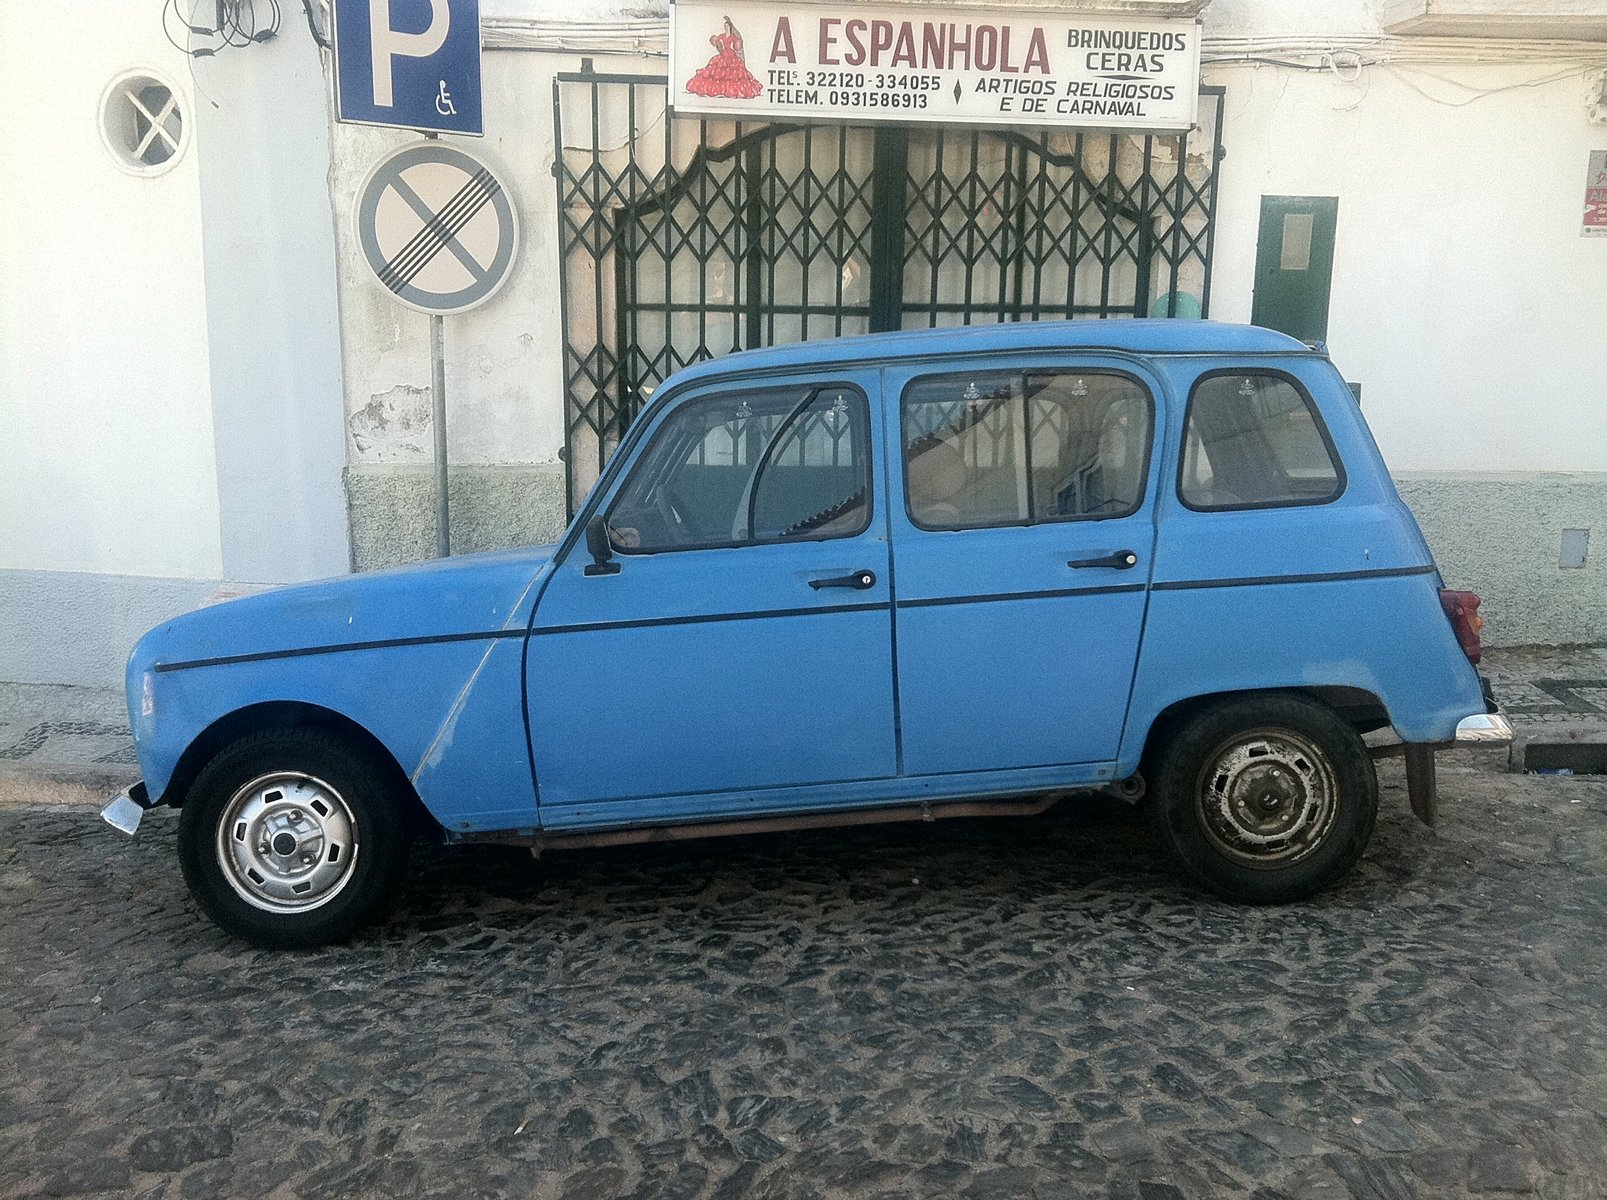 A blue car parked on a cobbled street with white walls, a metal gate and signs.